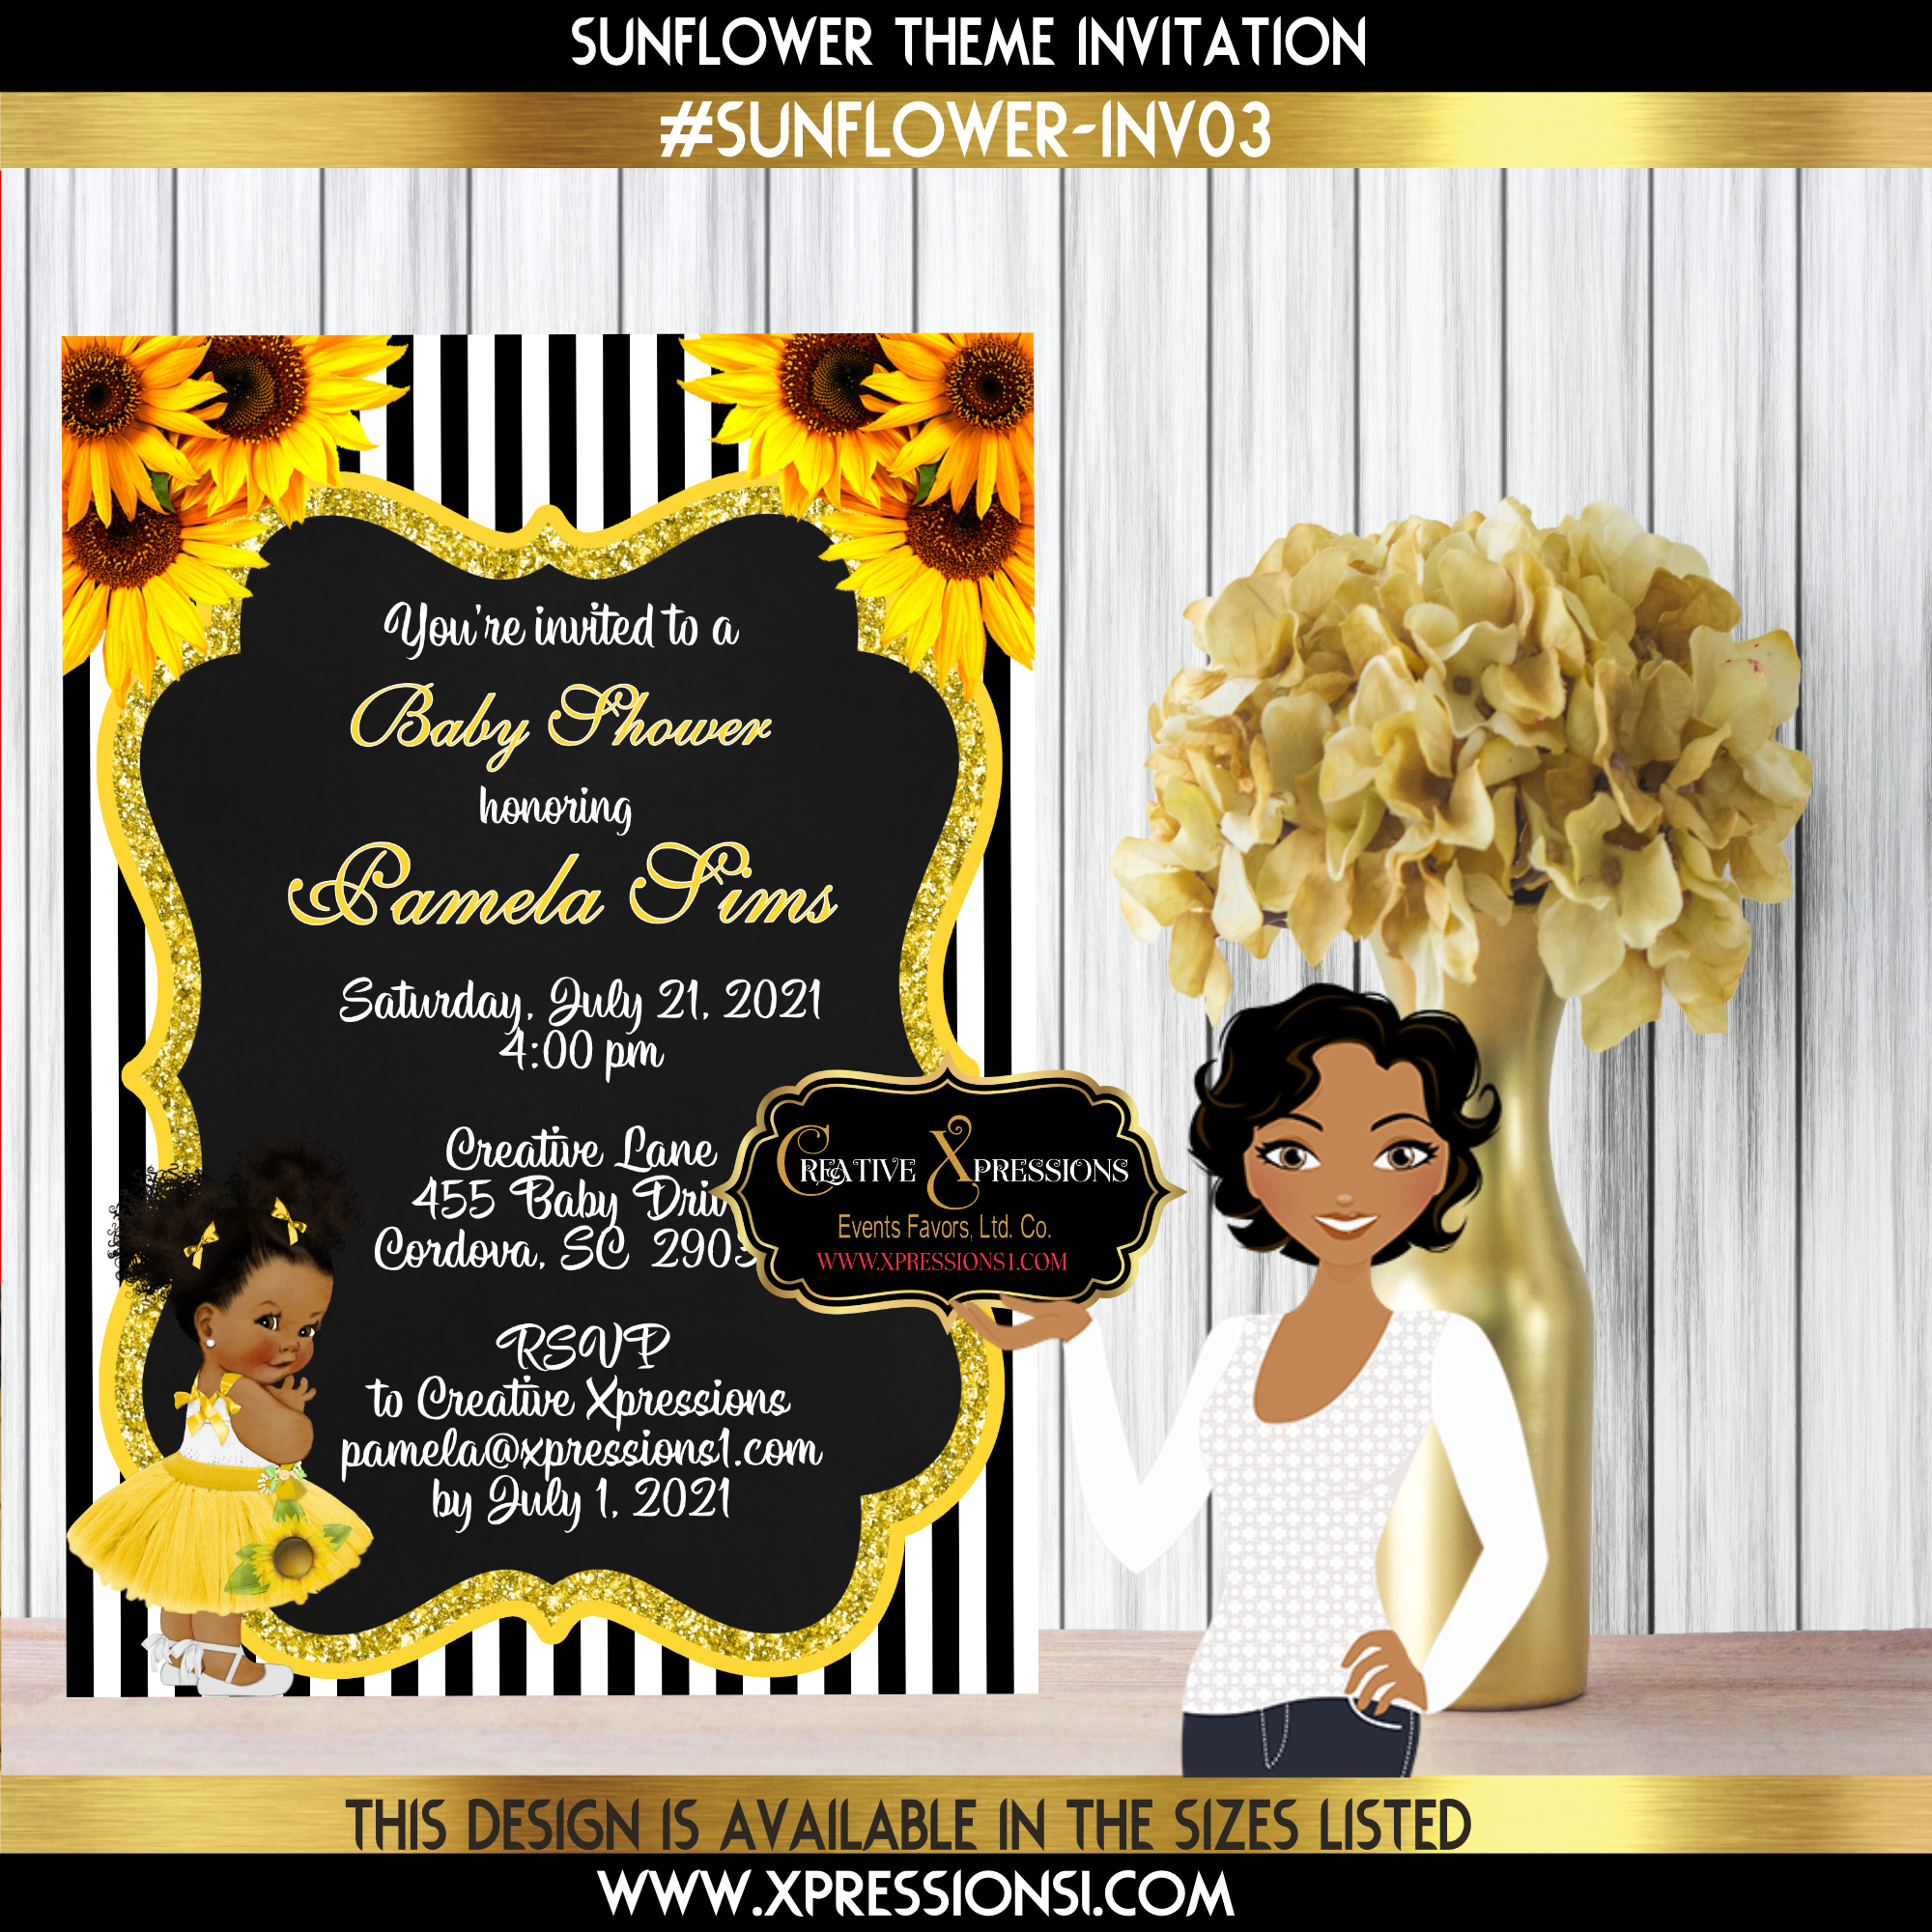 Black Stripes with Sunflowers Shower Invitation